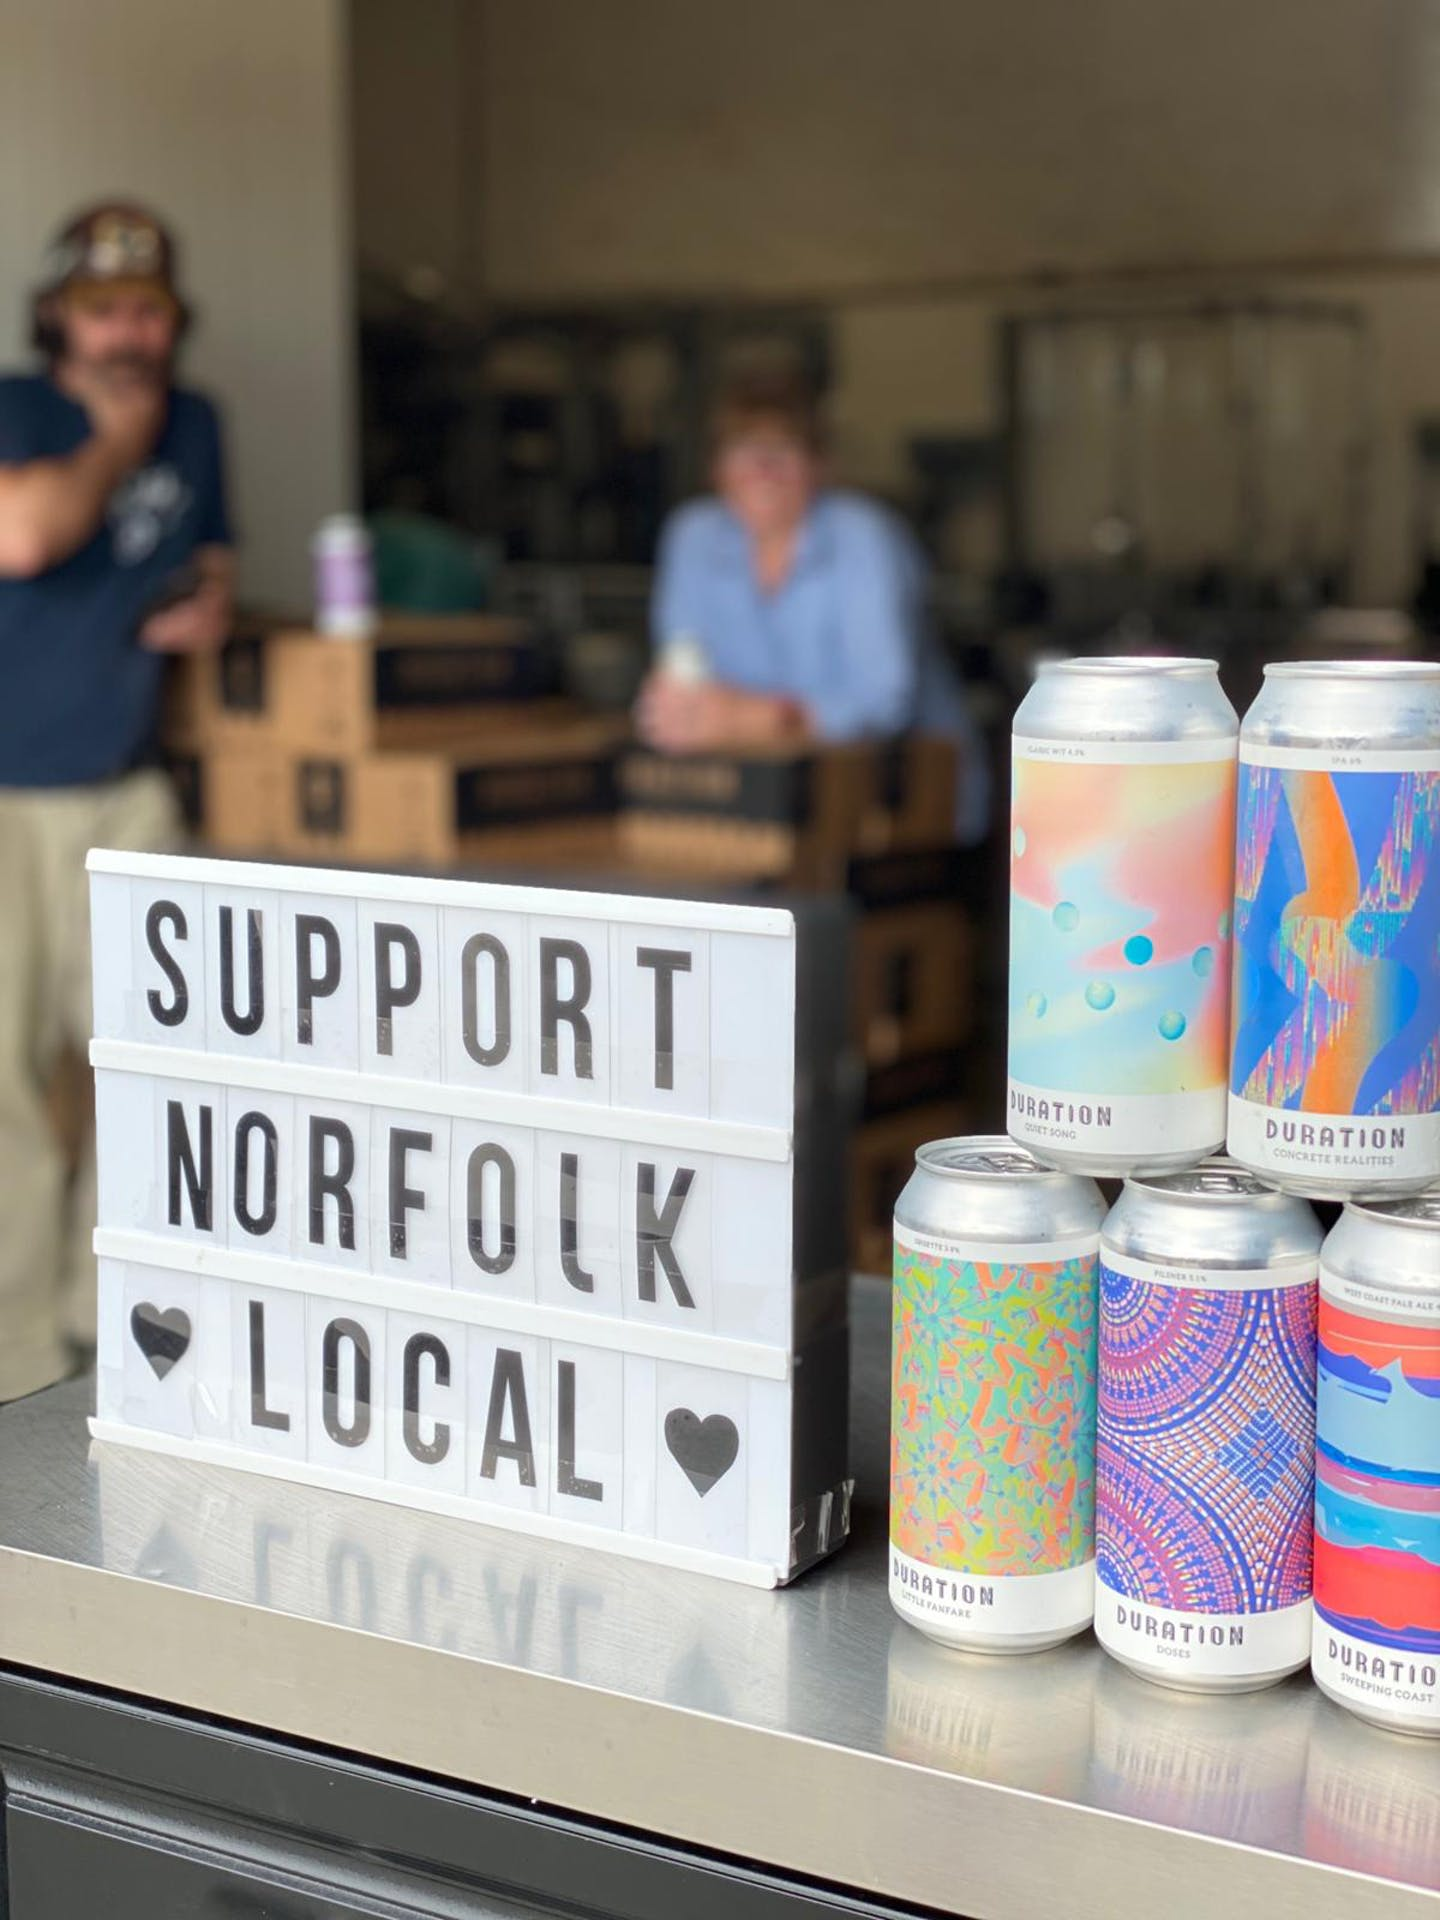 Local Kiosk Norfolk Brewery Open Day